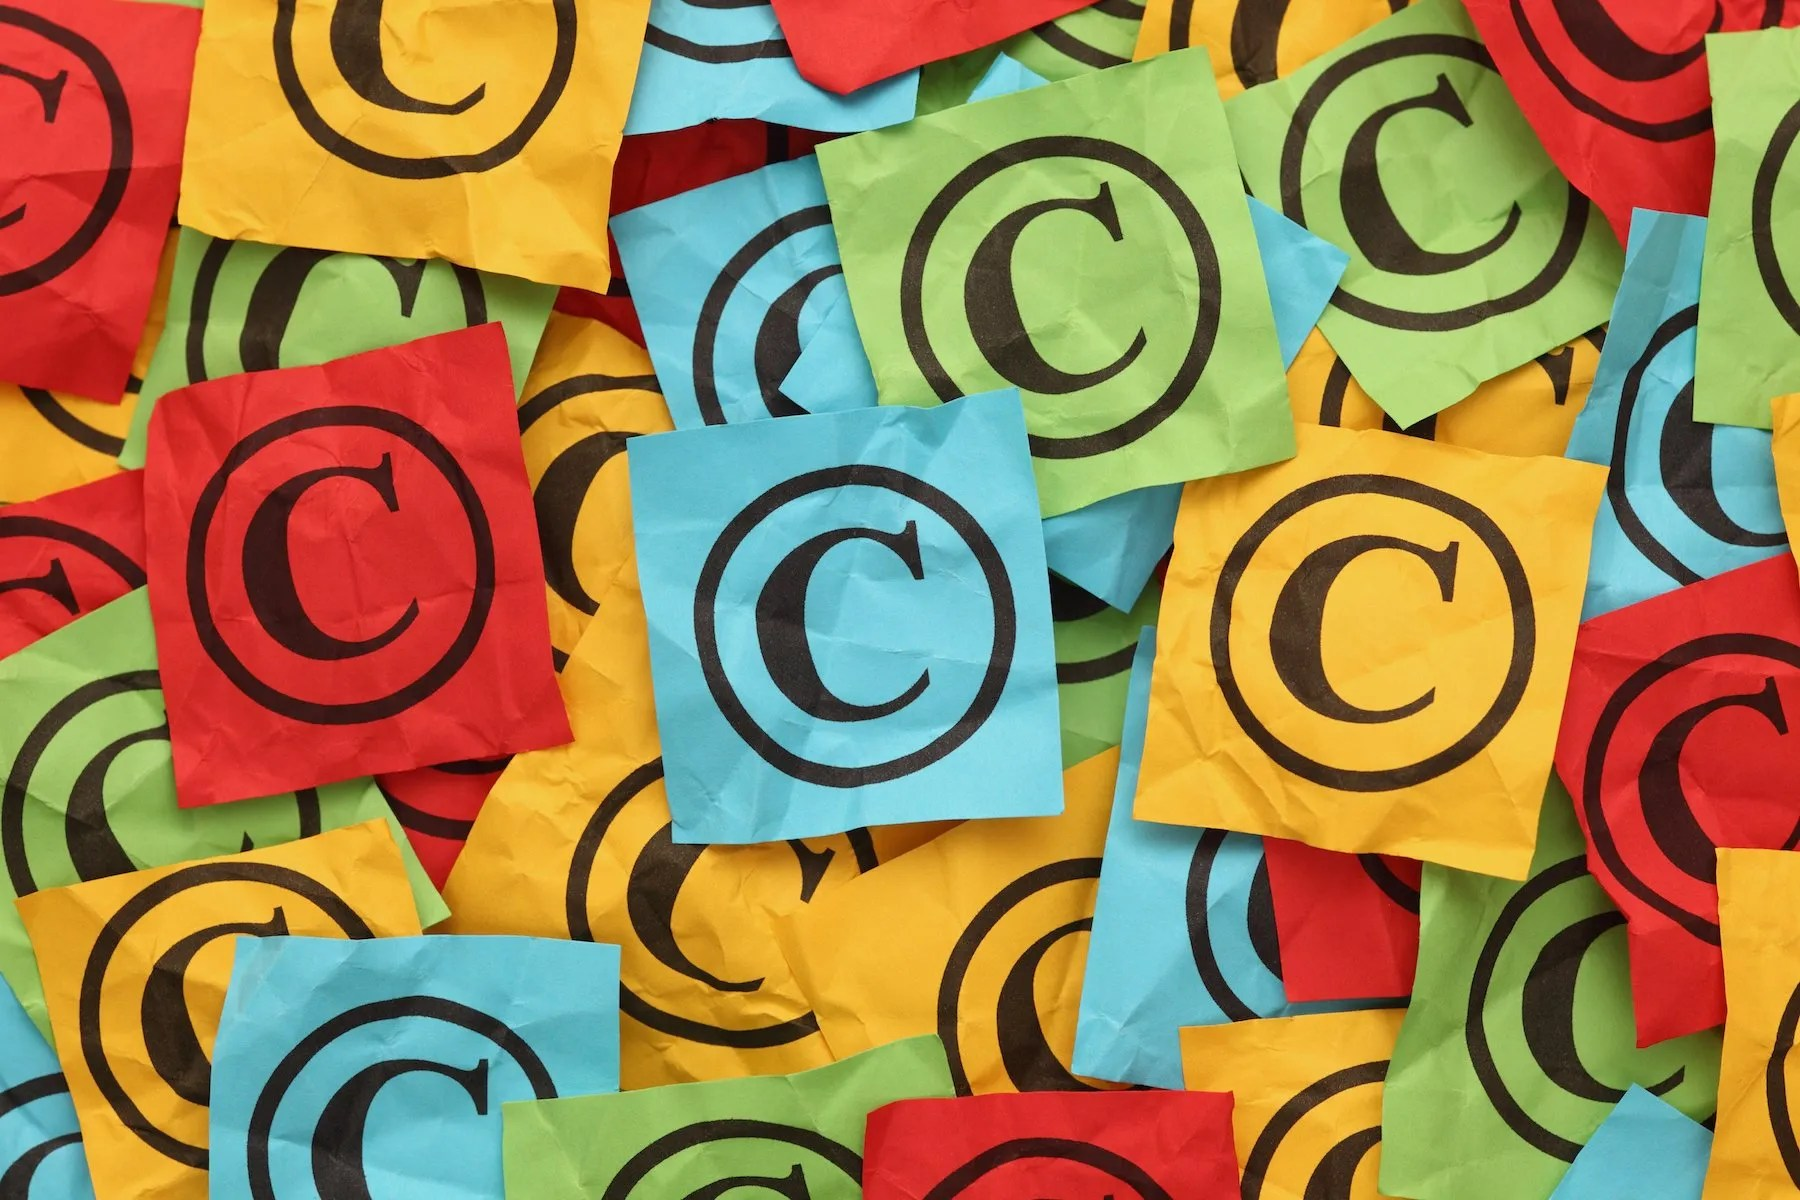 Copyright Symbol and Pinterest Best Practice